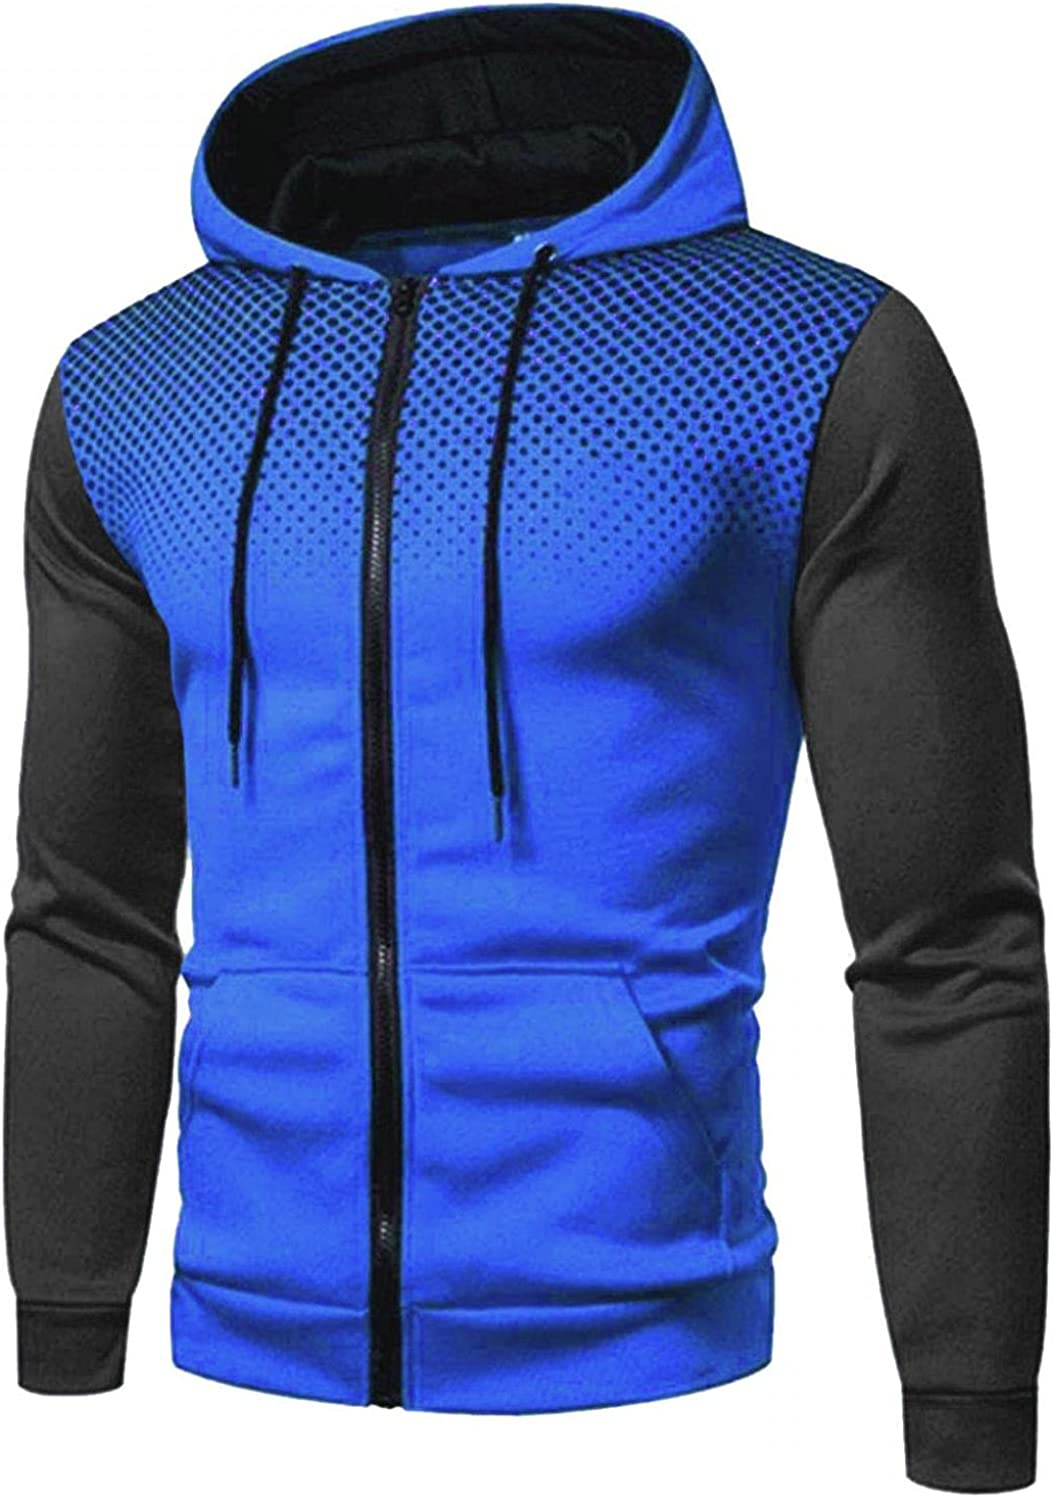 KEEYO Mens Casual Zip Up Hoodie Jacket Lightweight Colorblock Active Athletic Sports Hooded Pullover with Kanga Pockets